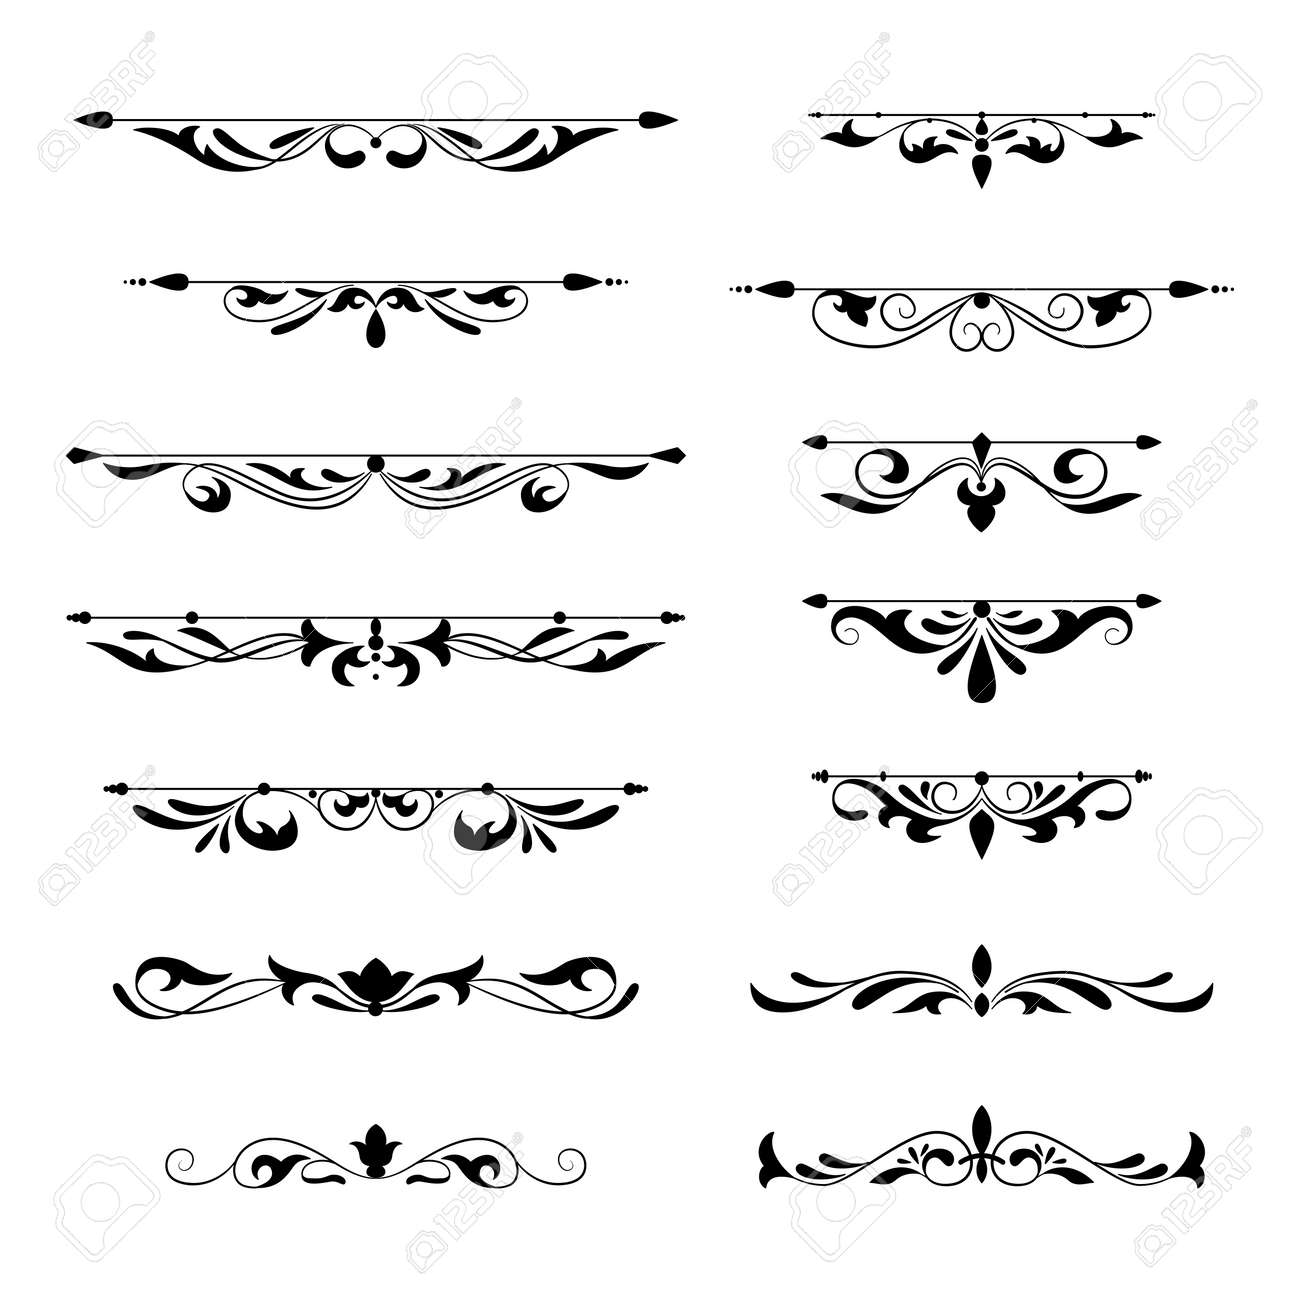 Floral decorative design element collection vintage style. Dividers set. Traced by hand from own sketch. - 94796265